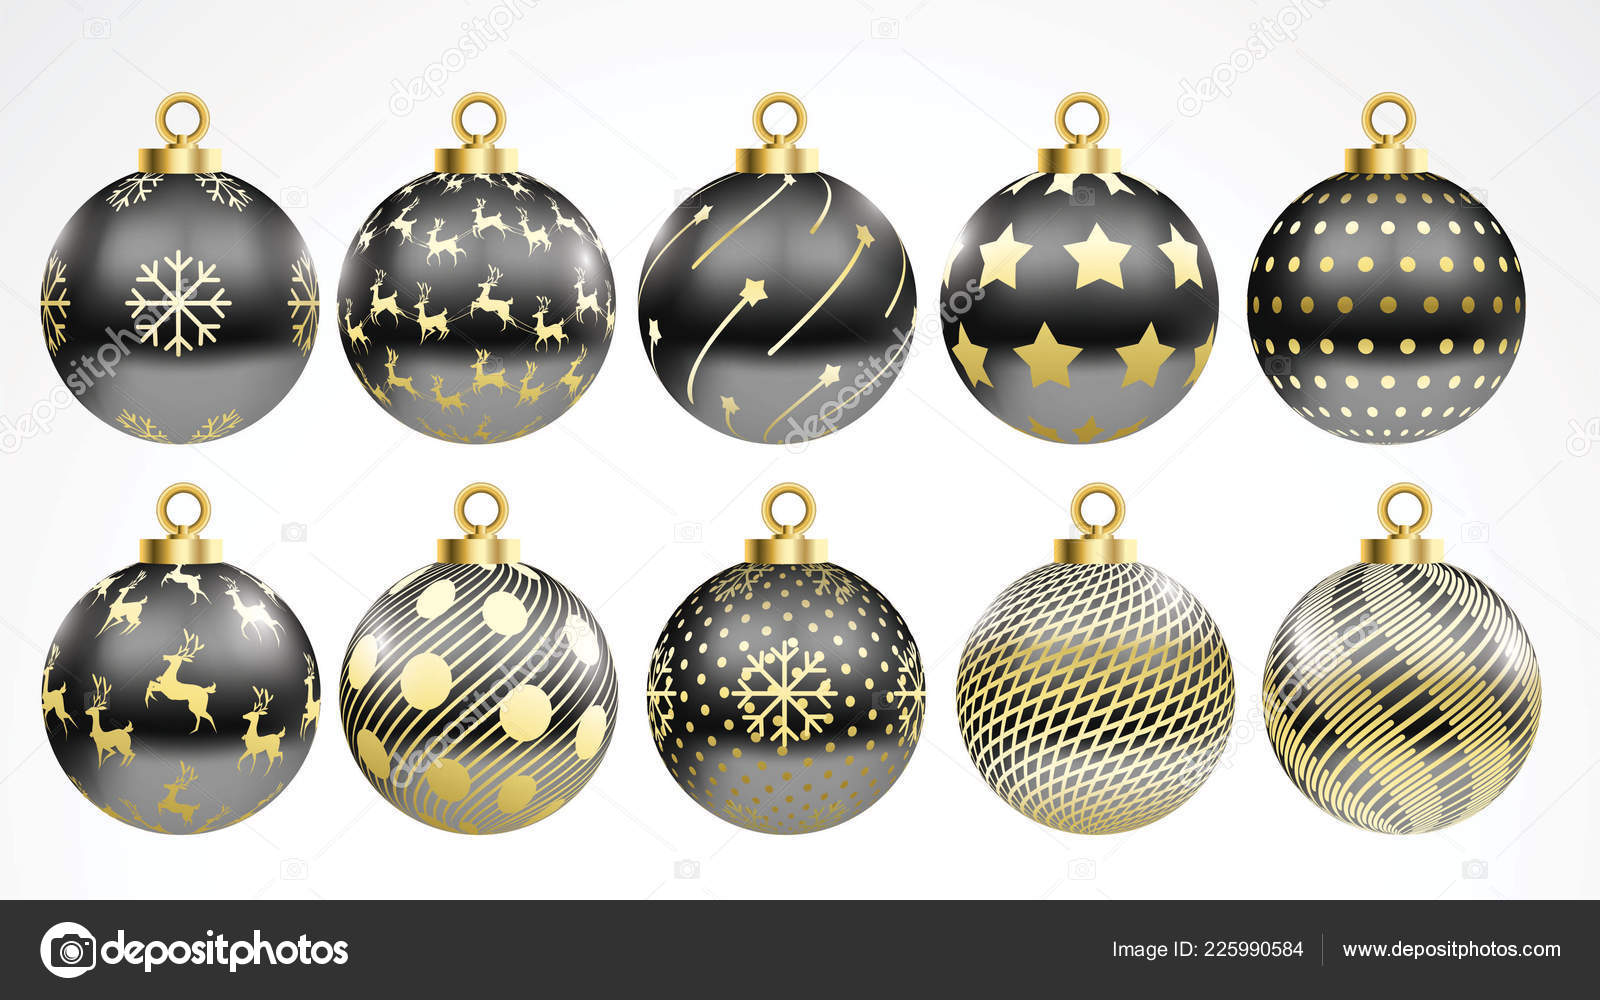 Black Gold And Silver Decorations  from st4.depositphotos.com